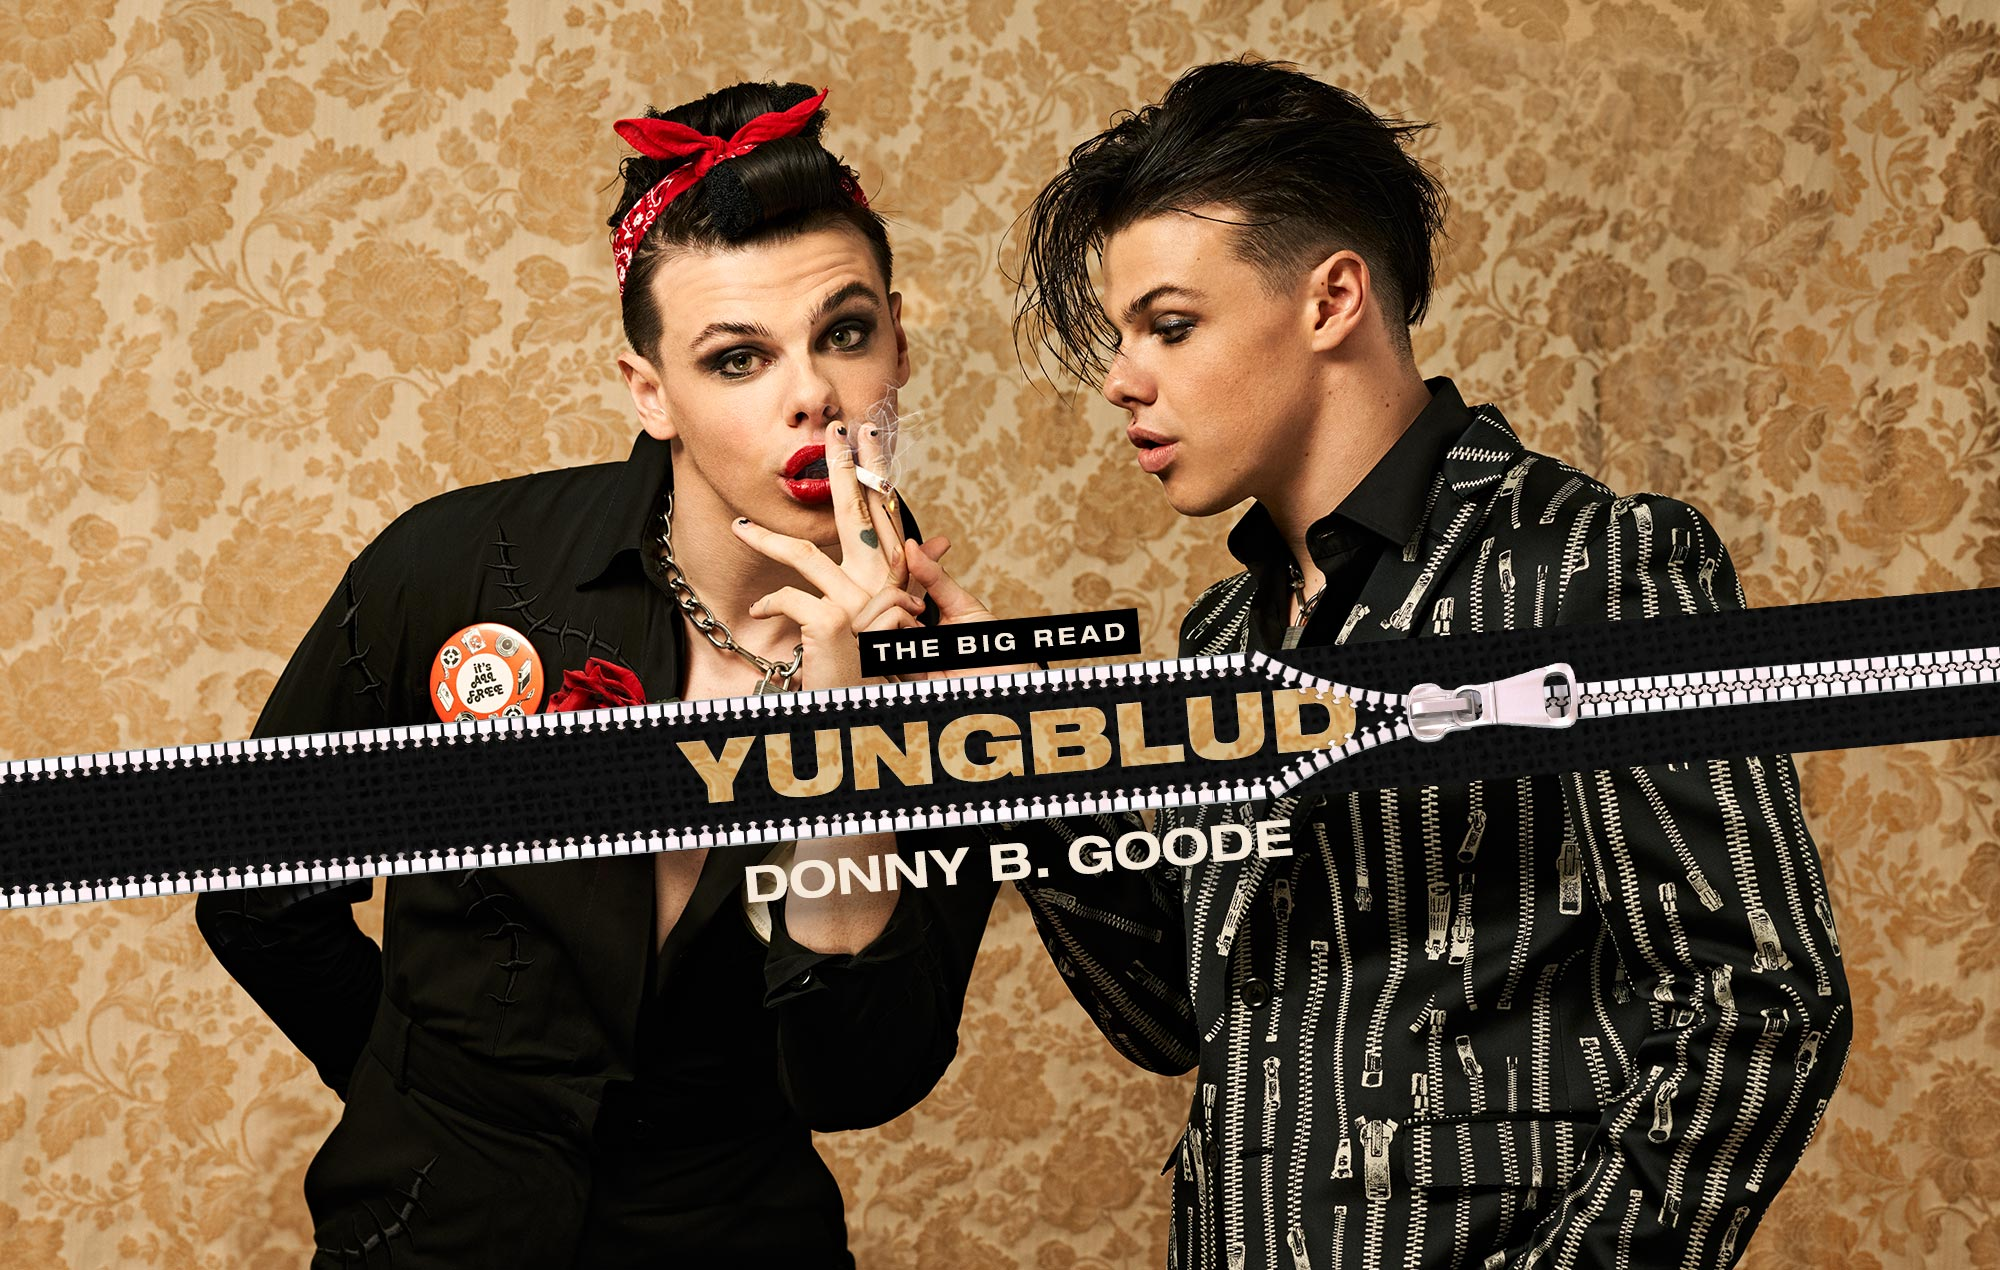 The Big Read Yungblud I Wanna Be The Rock Star For The 2020 Generation